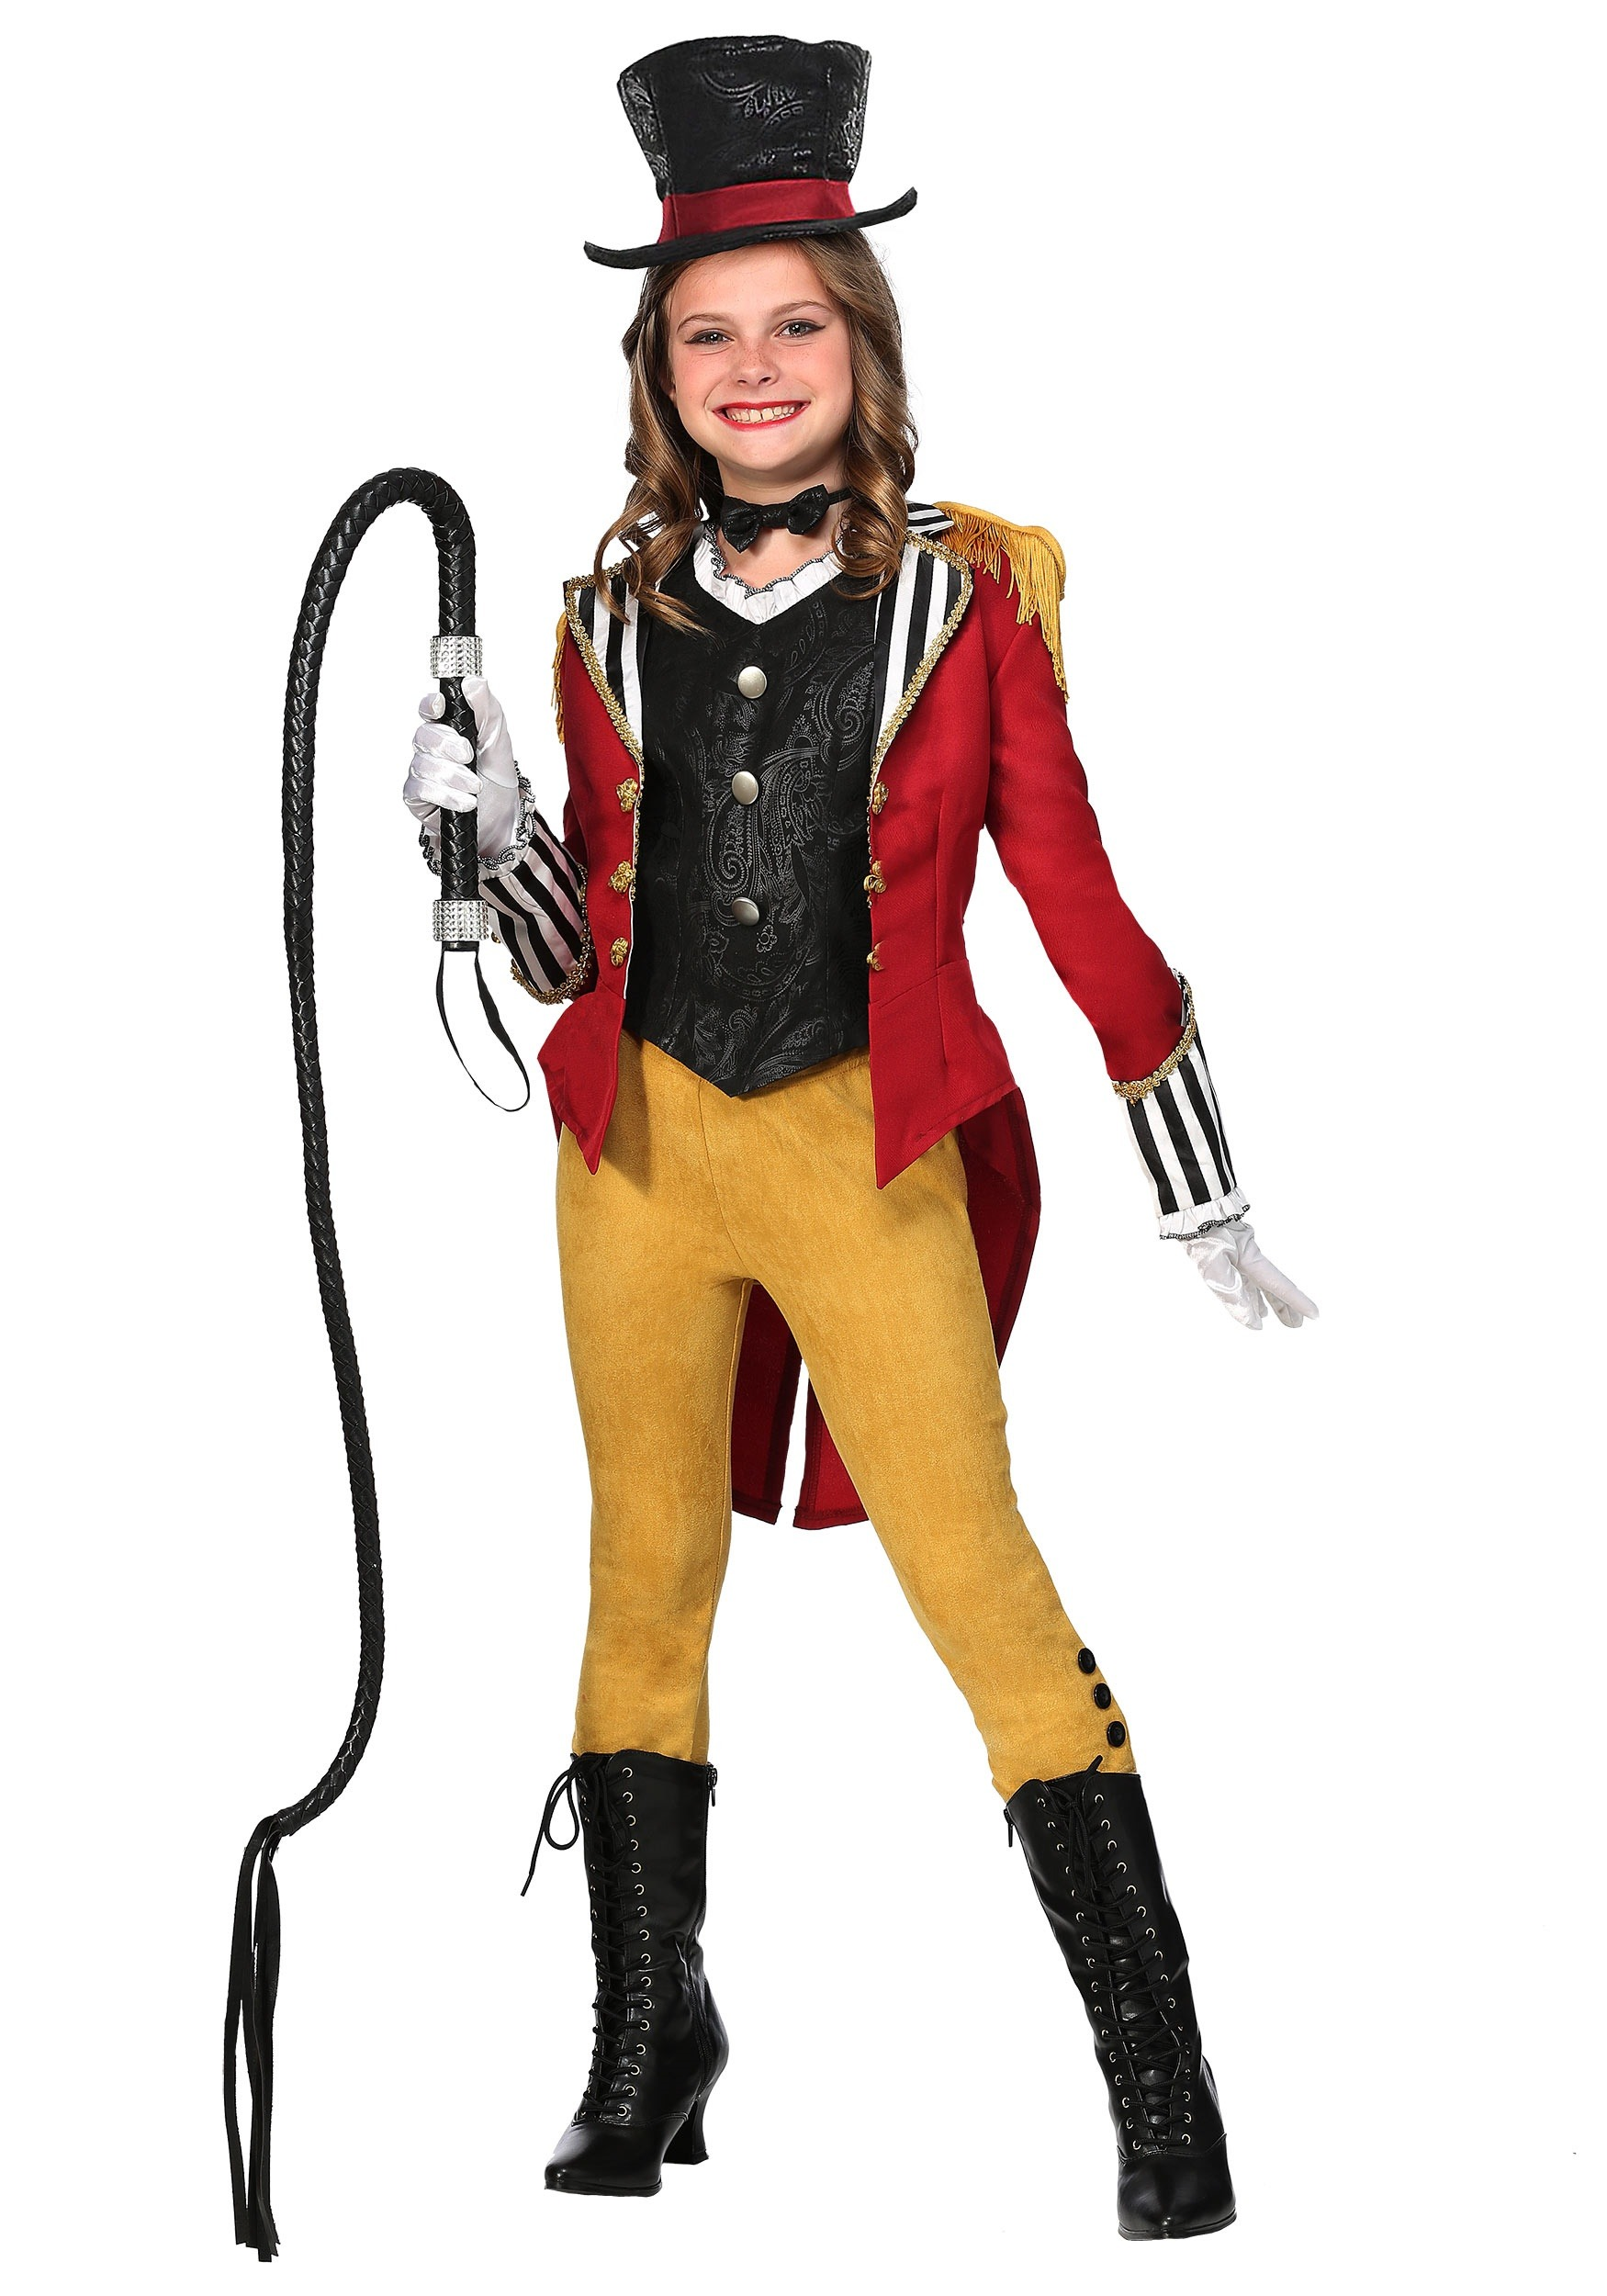 GIRLS RAVISHING RINGMASTER COSTUME Jacket Vest Pants Bow Tie Hat